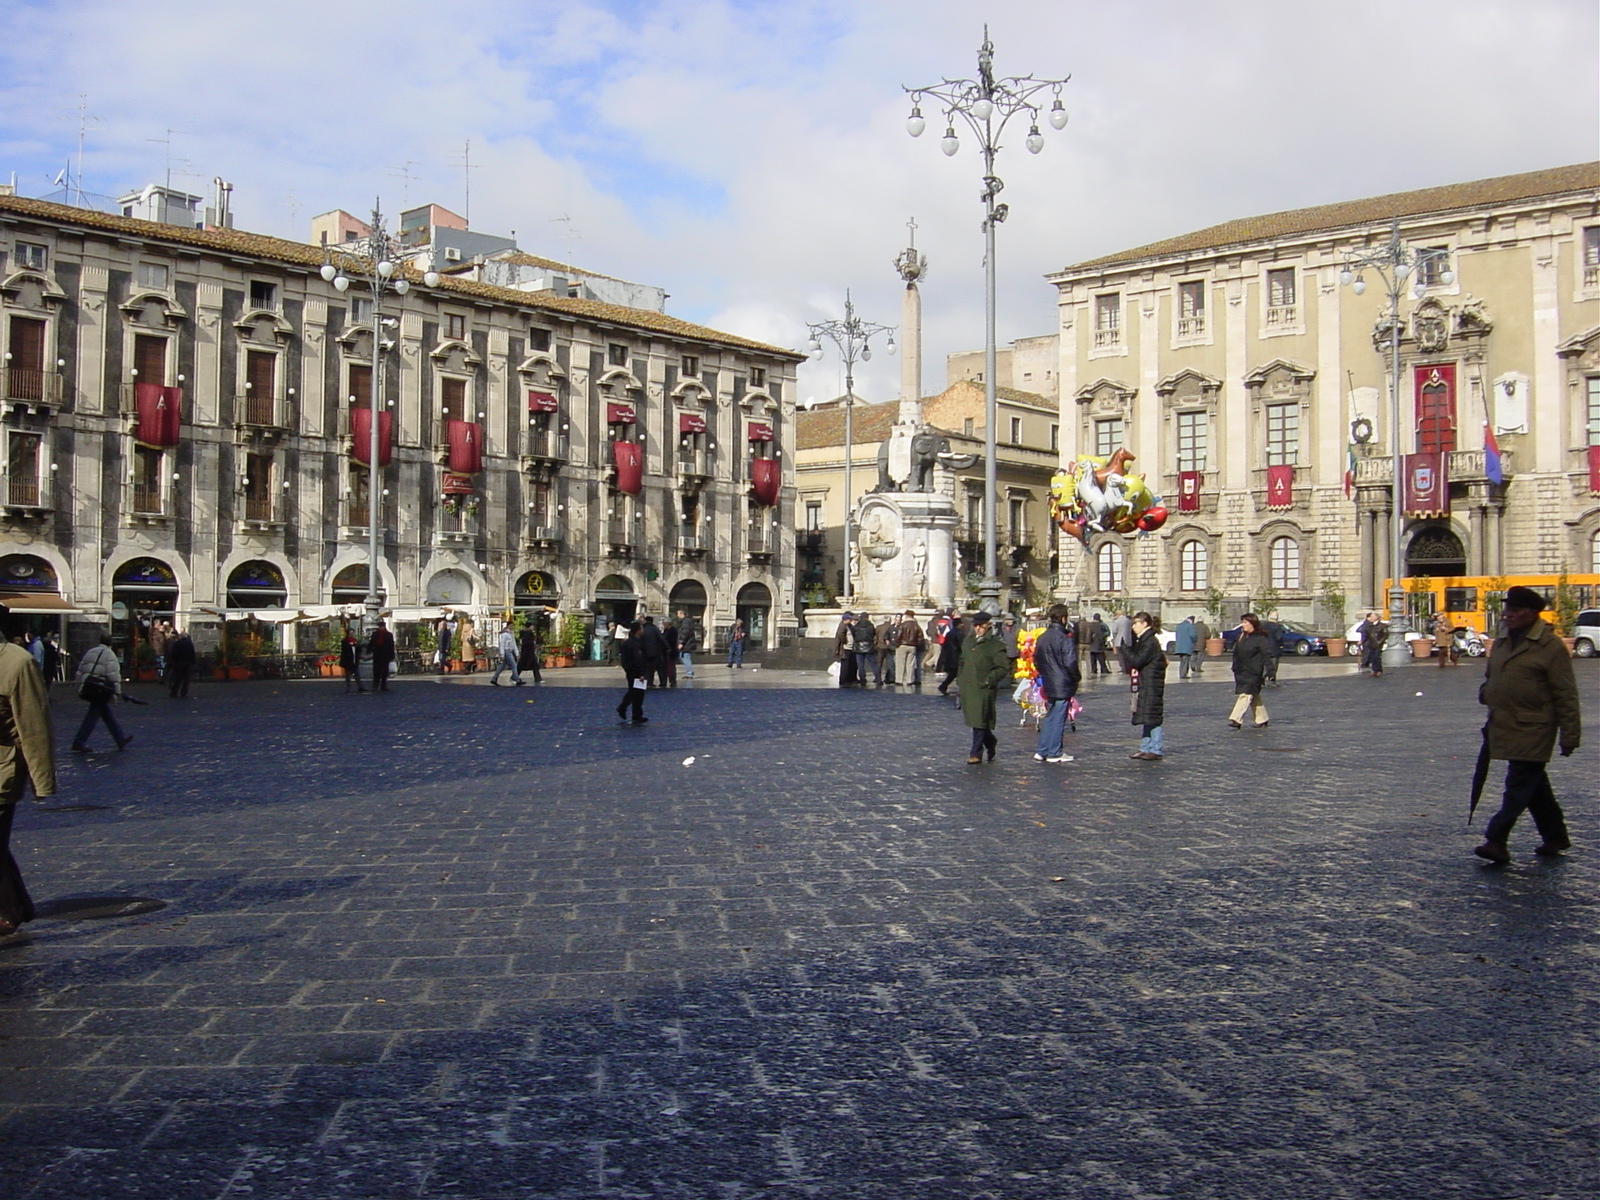 Catania Italy  city photos gallery : Original file ‎ 1,600 × 1,200 pixels, file size: 915 KB, MIME type ...